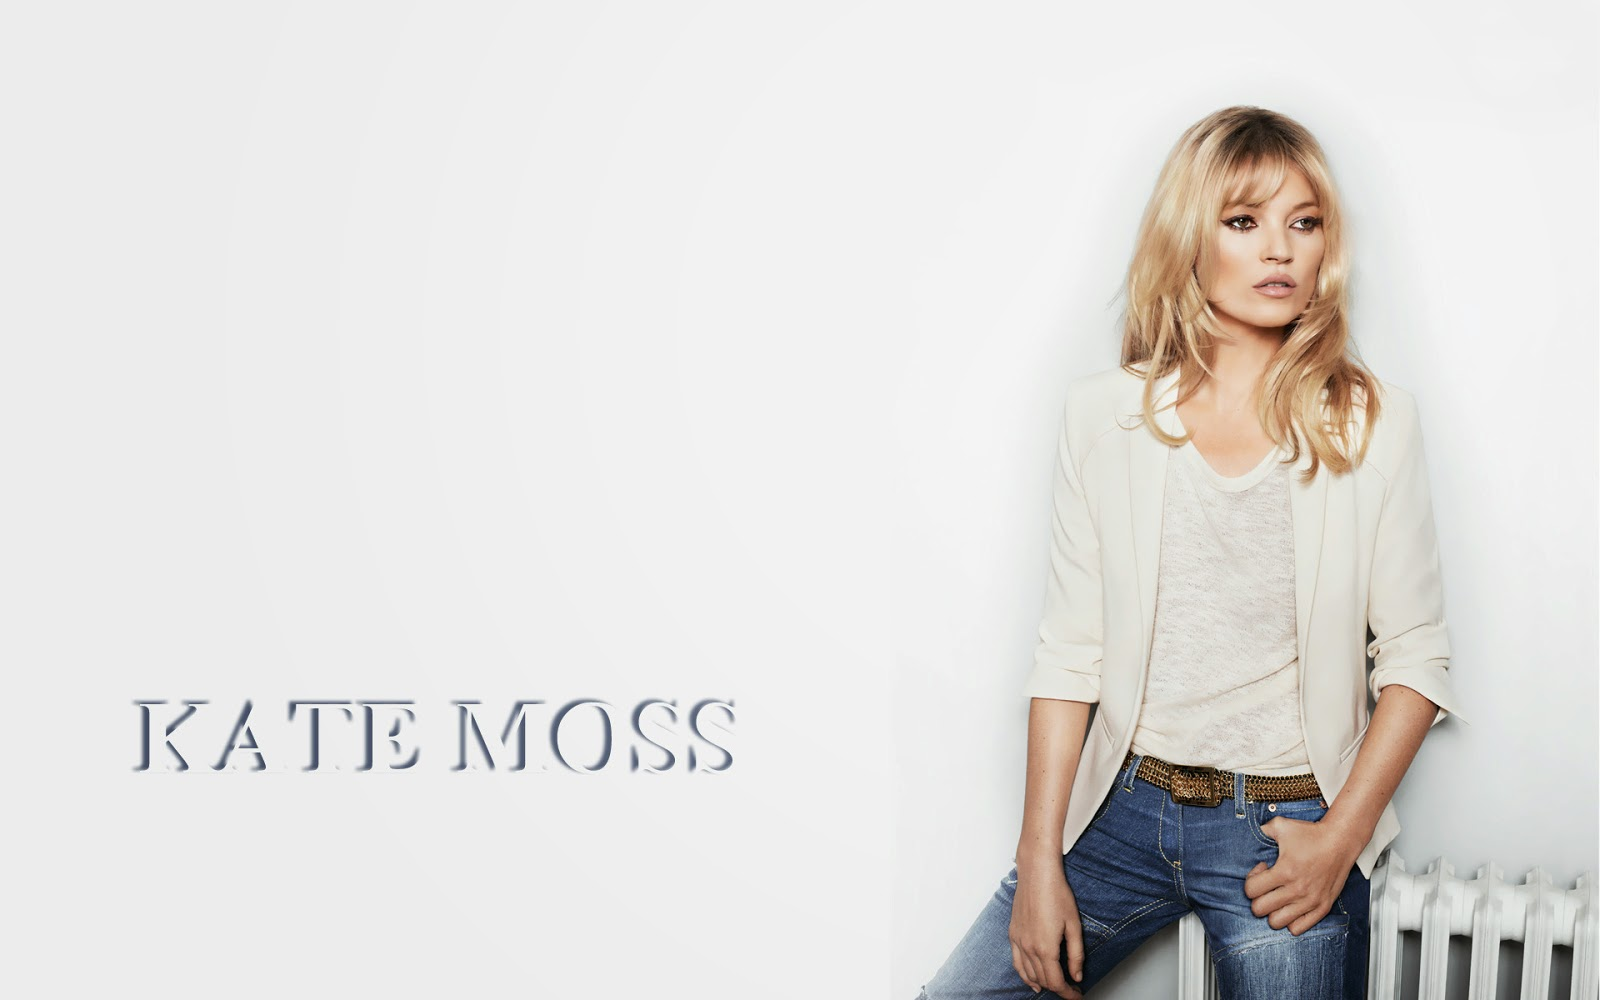 Kate Moss Hd Wallpapers Free Download